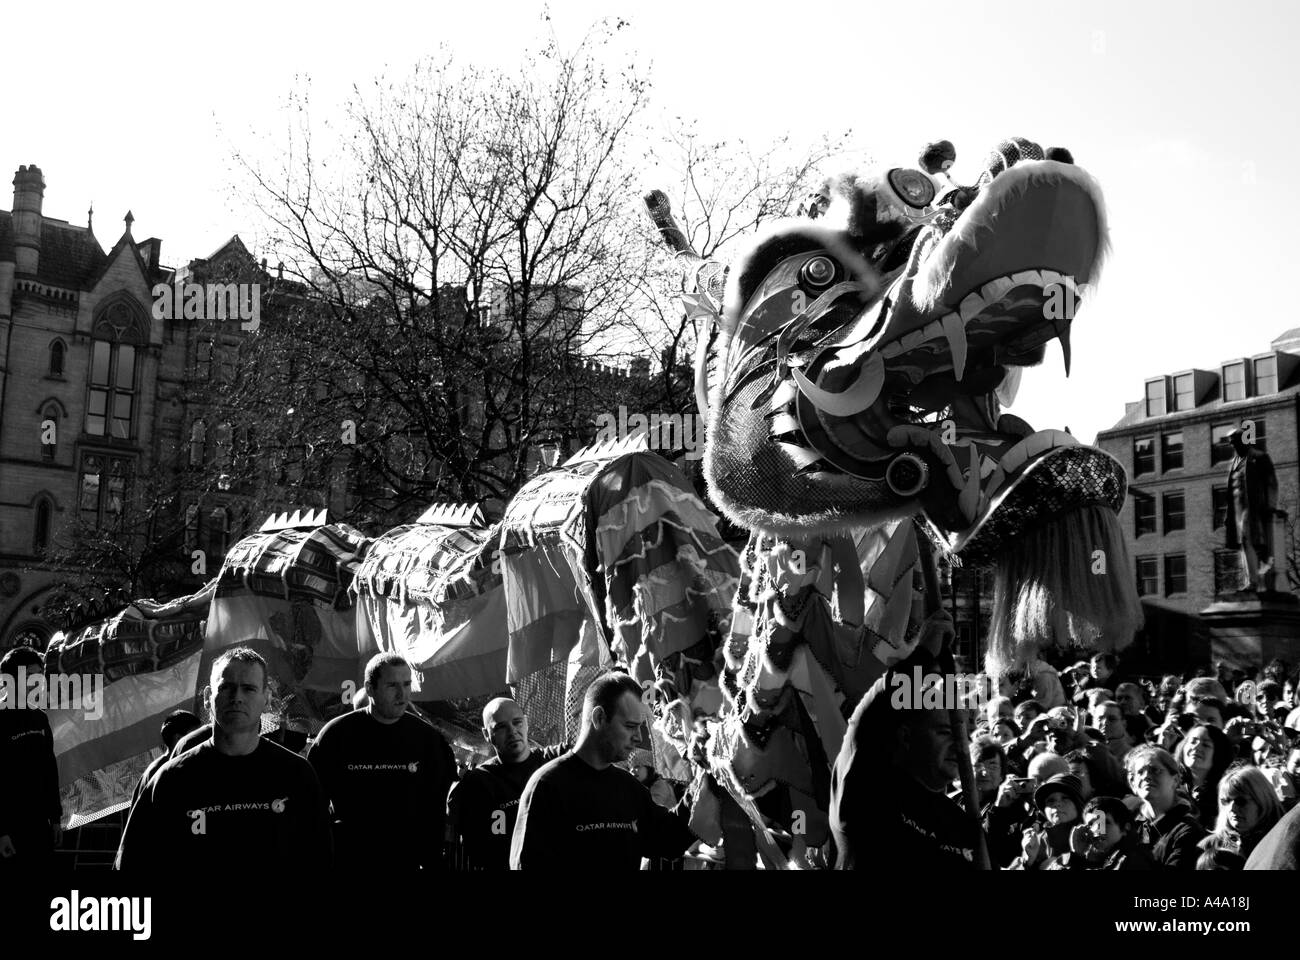 Dragon dance in Chinese New Year Celebration in Albert Square Manchester UK 2007 - Stock Image